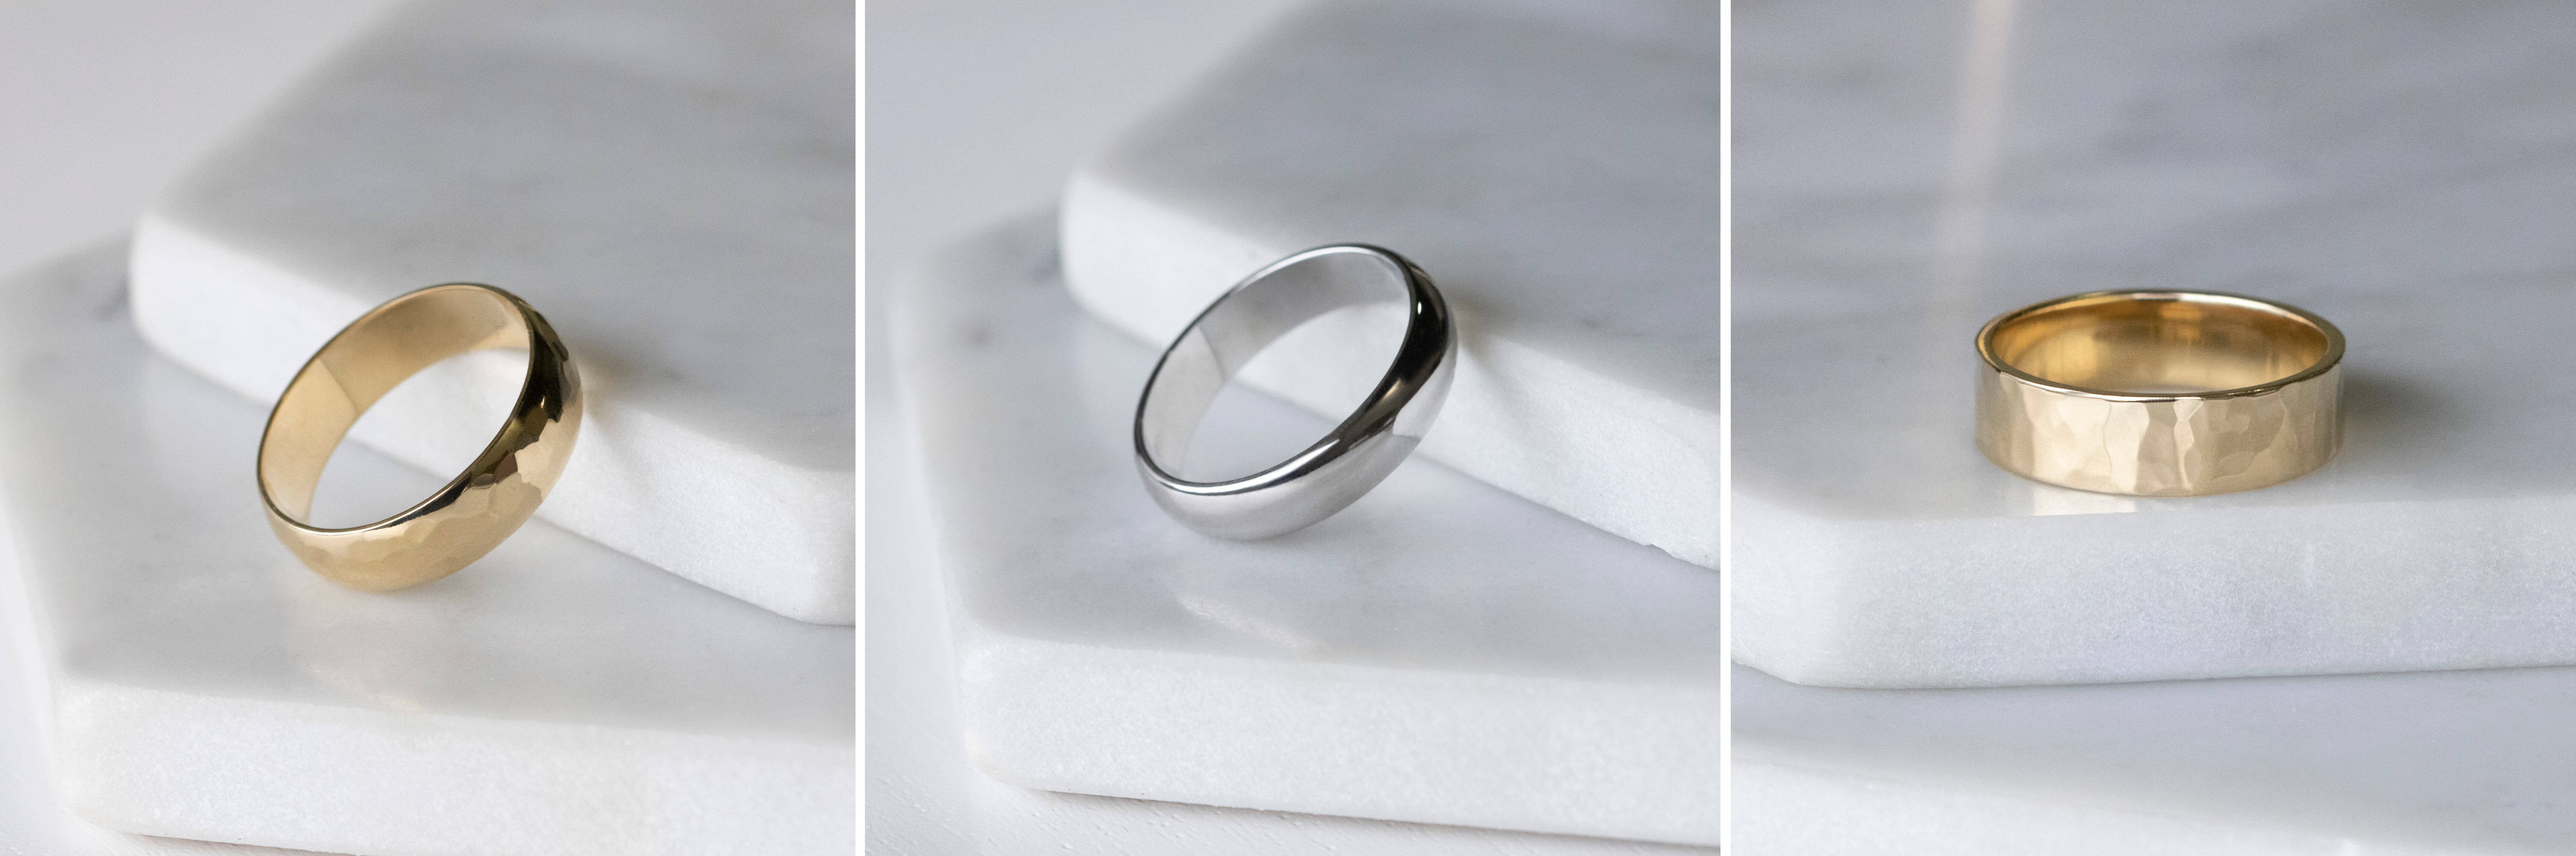 Hammered and sleek styles of men's wedding bands.